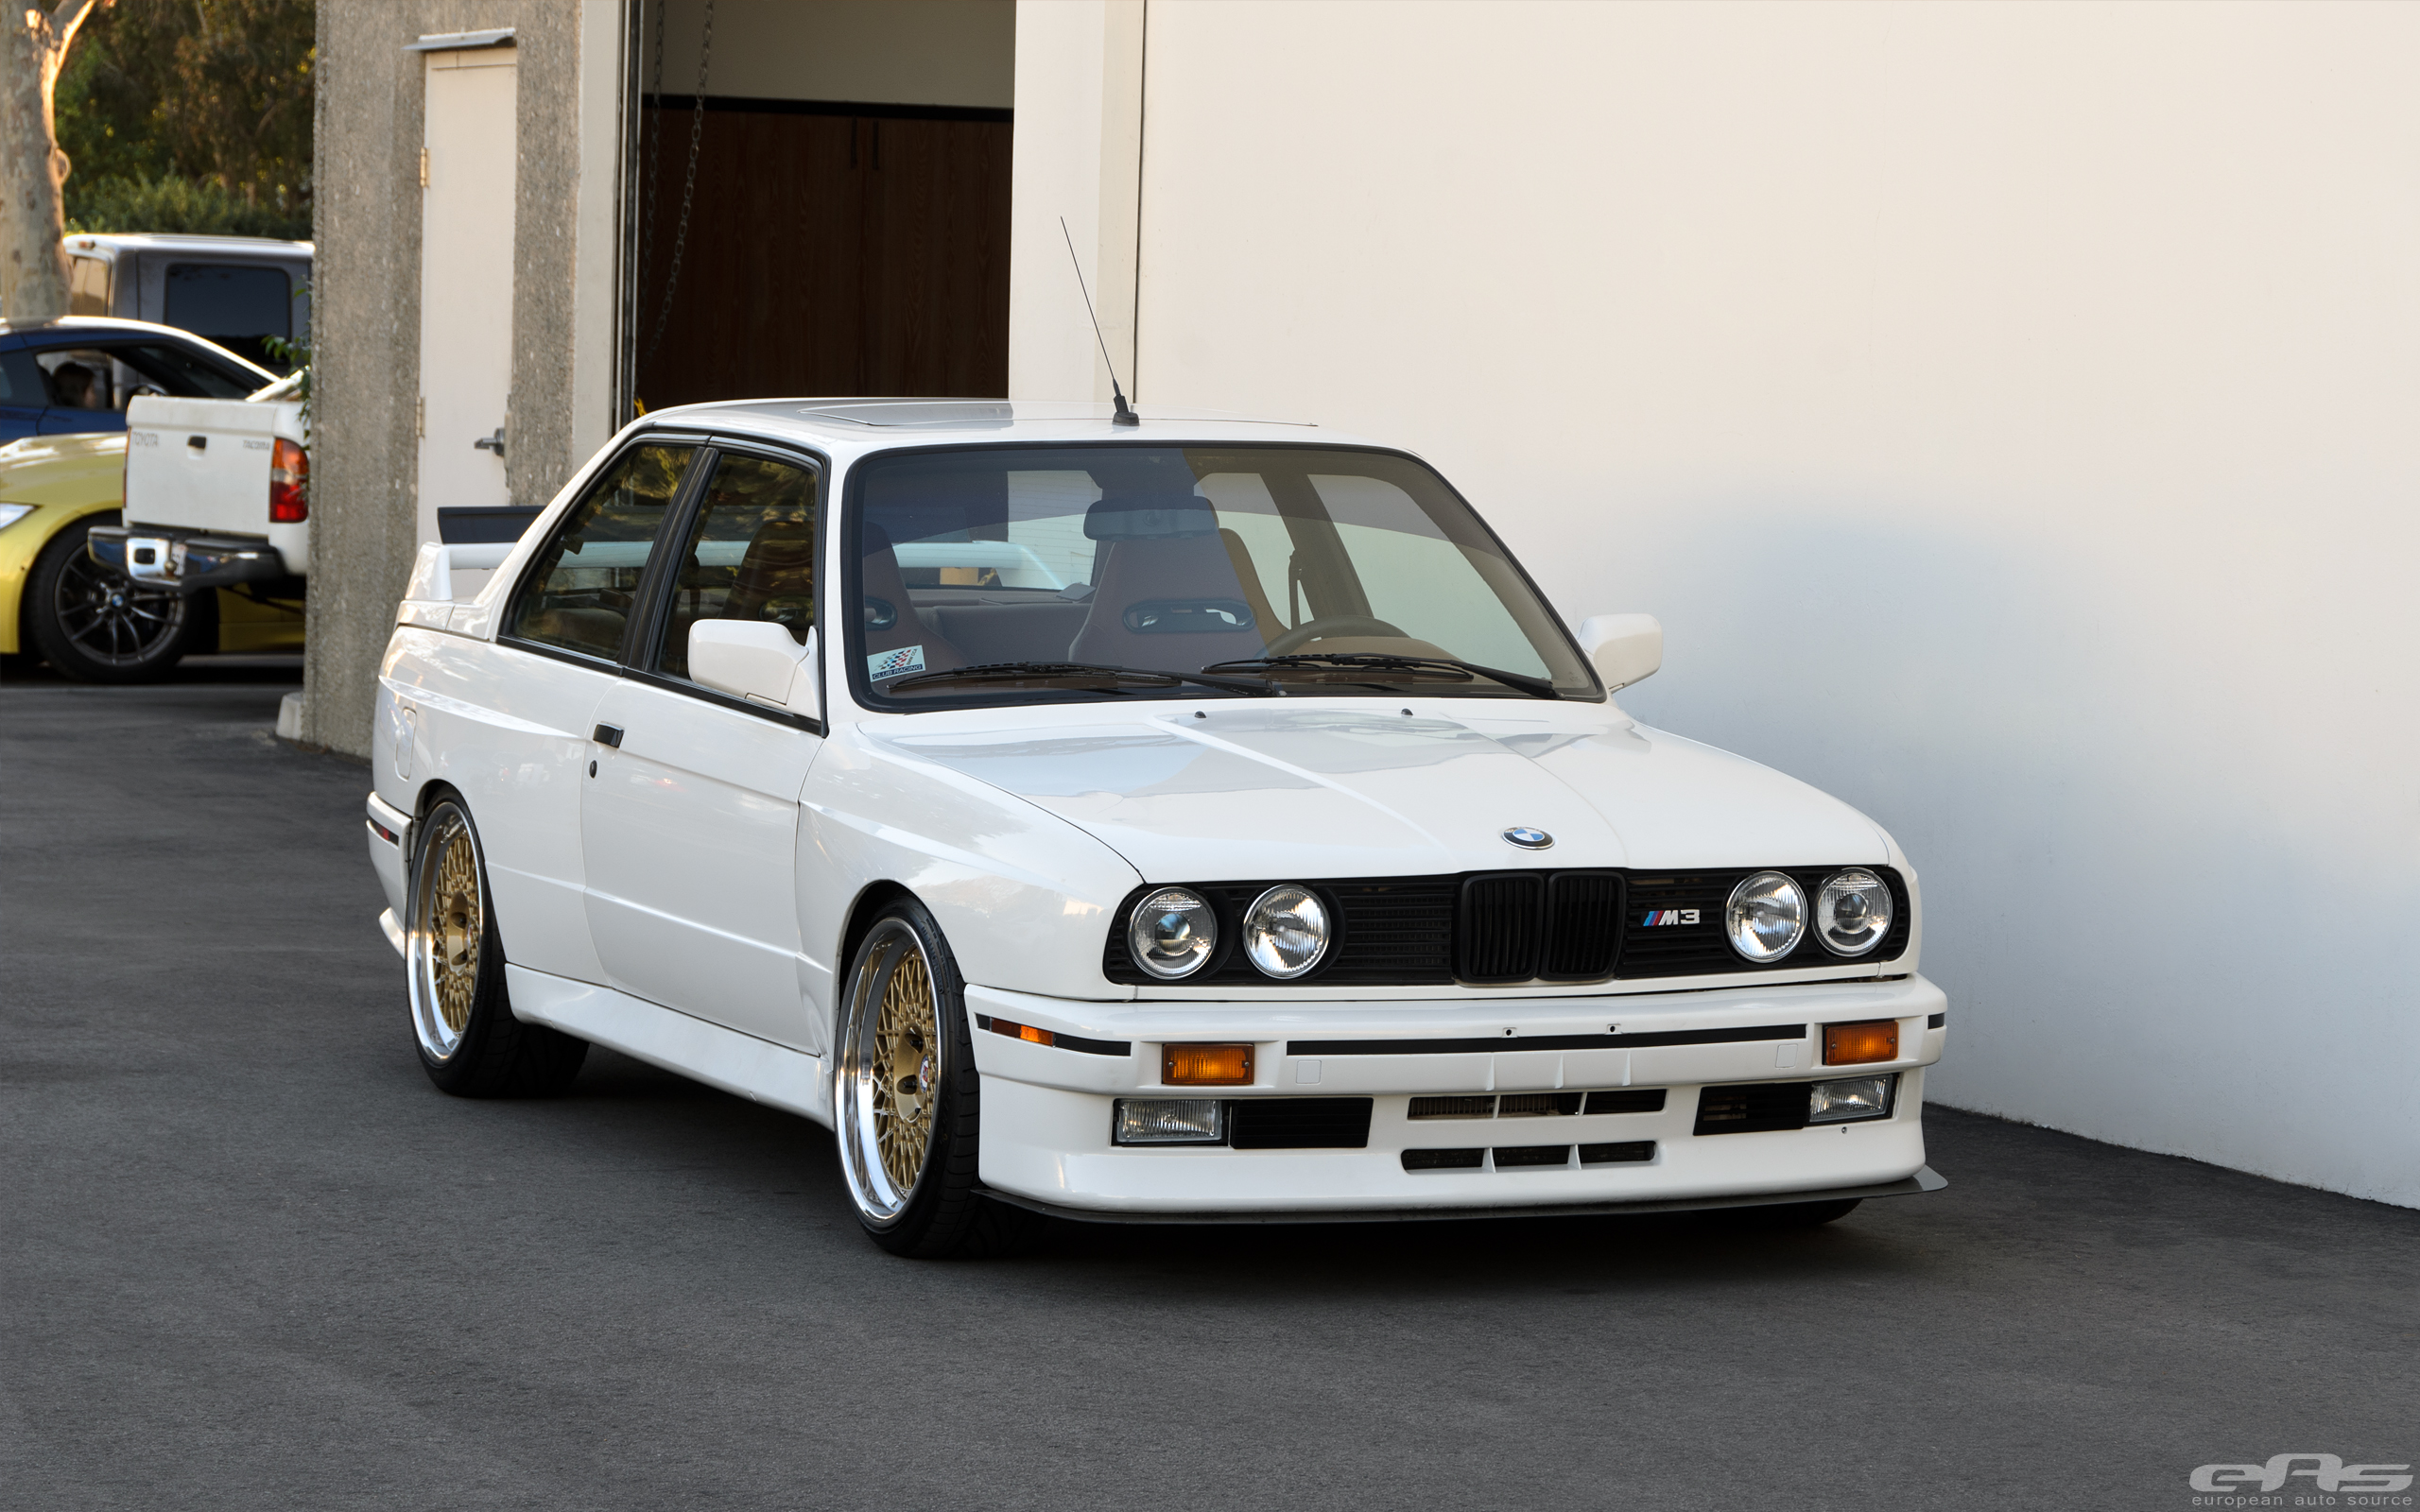 Jaw Dropping E30 M3 Will Turn You Into An Old School Bmw